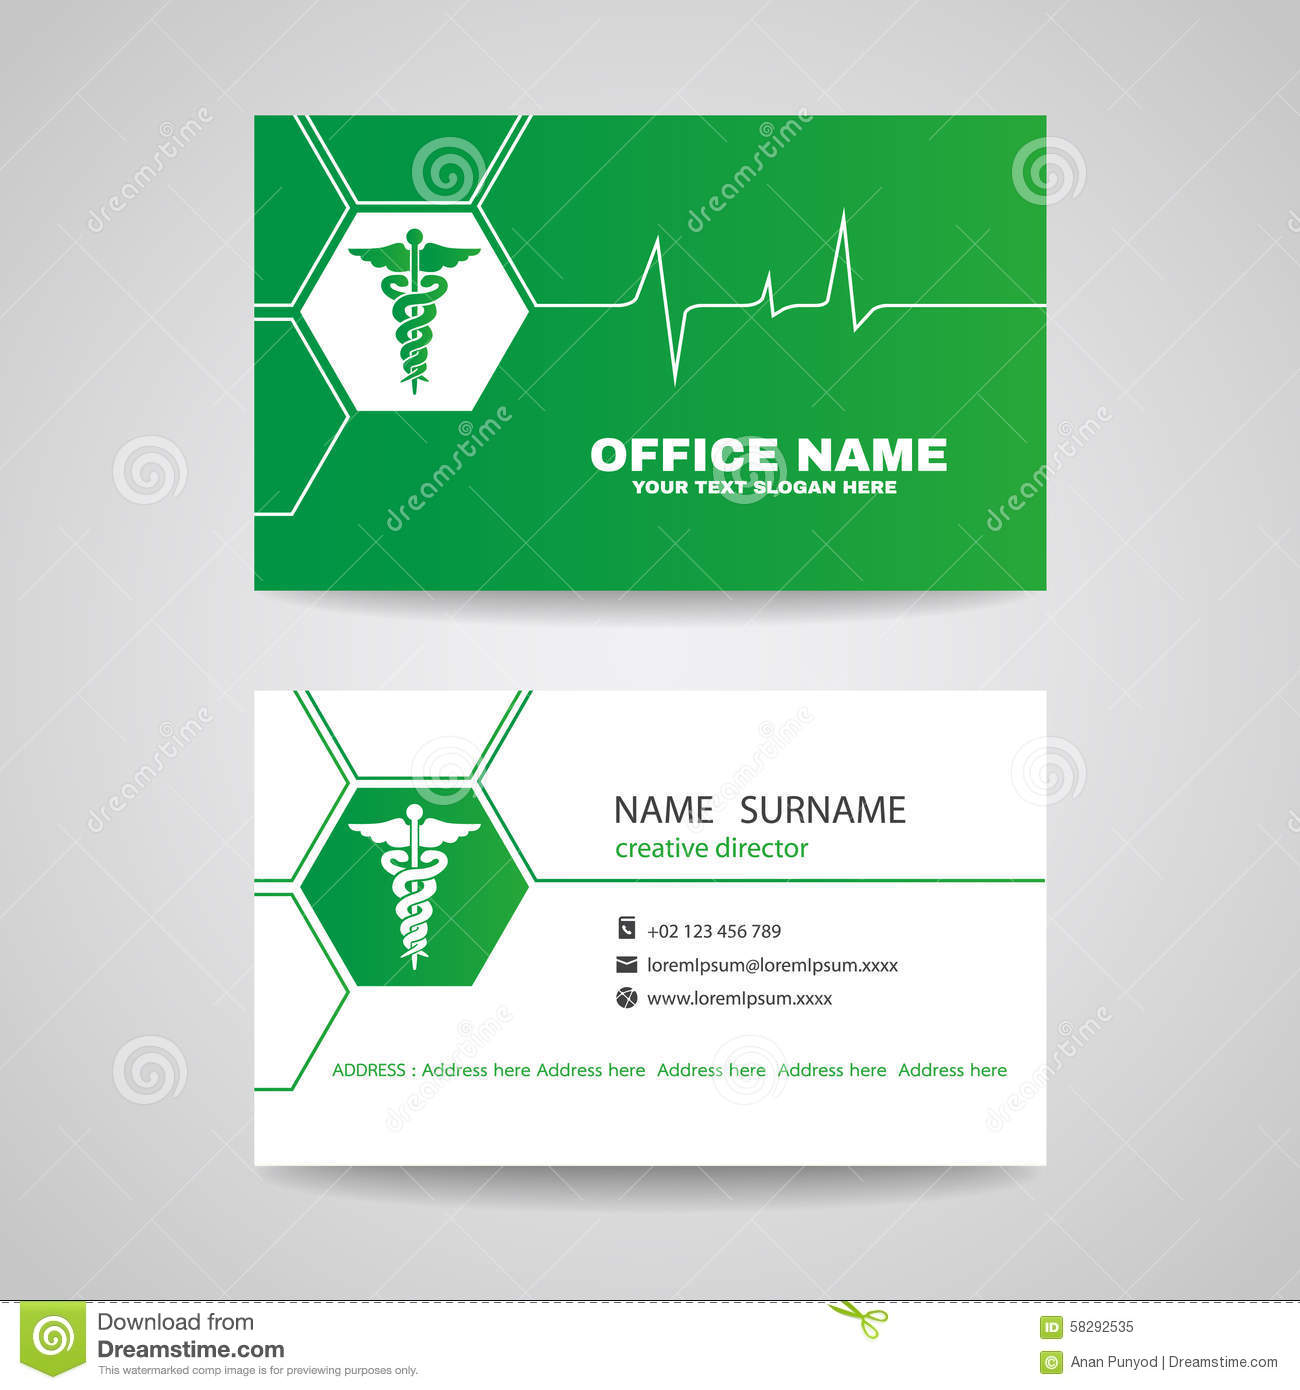 Business Card For Medical Healthcare - Green Caduceus And Waves Of ...